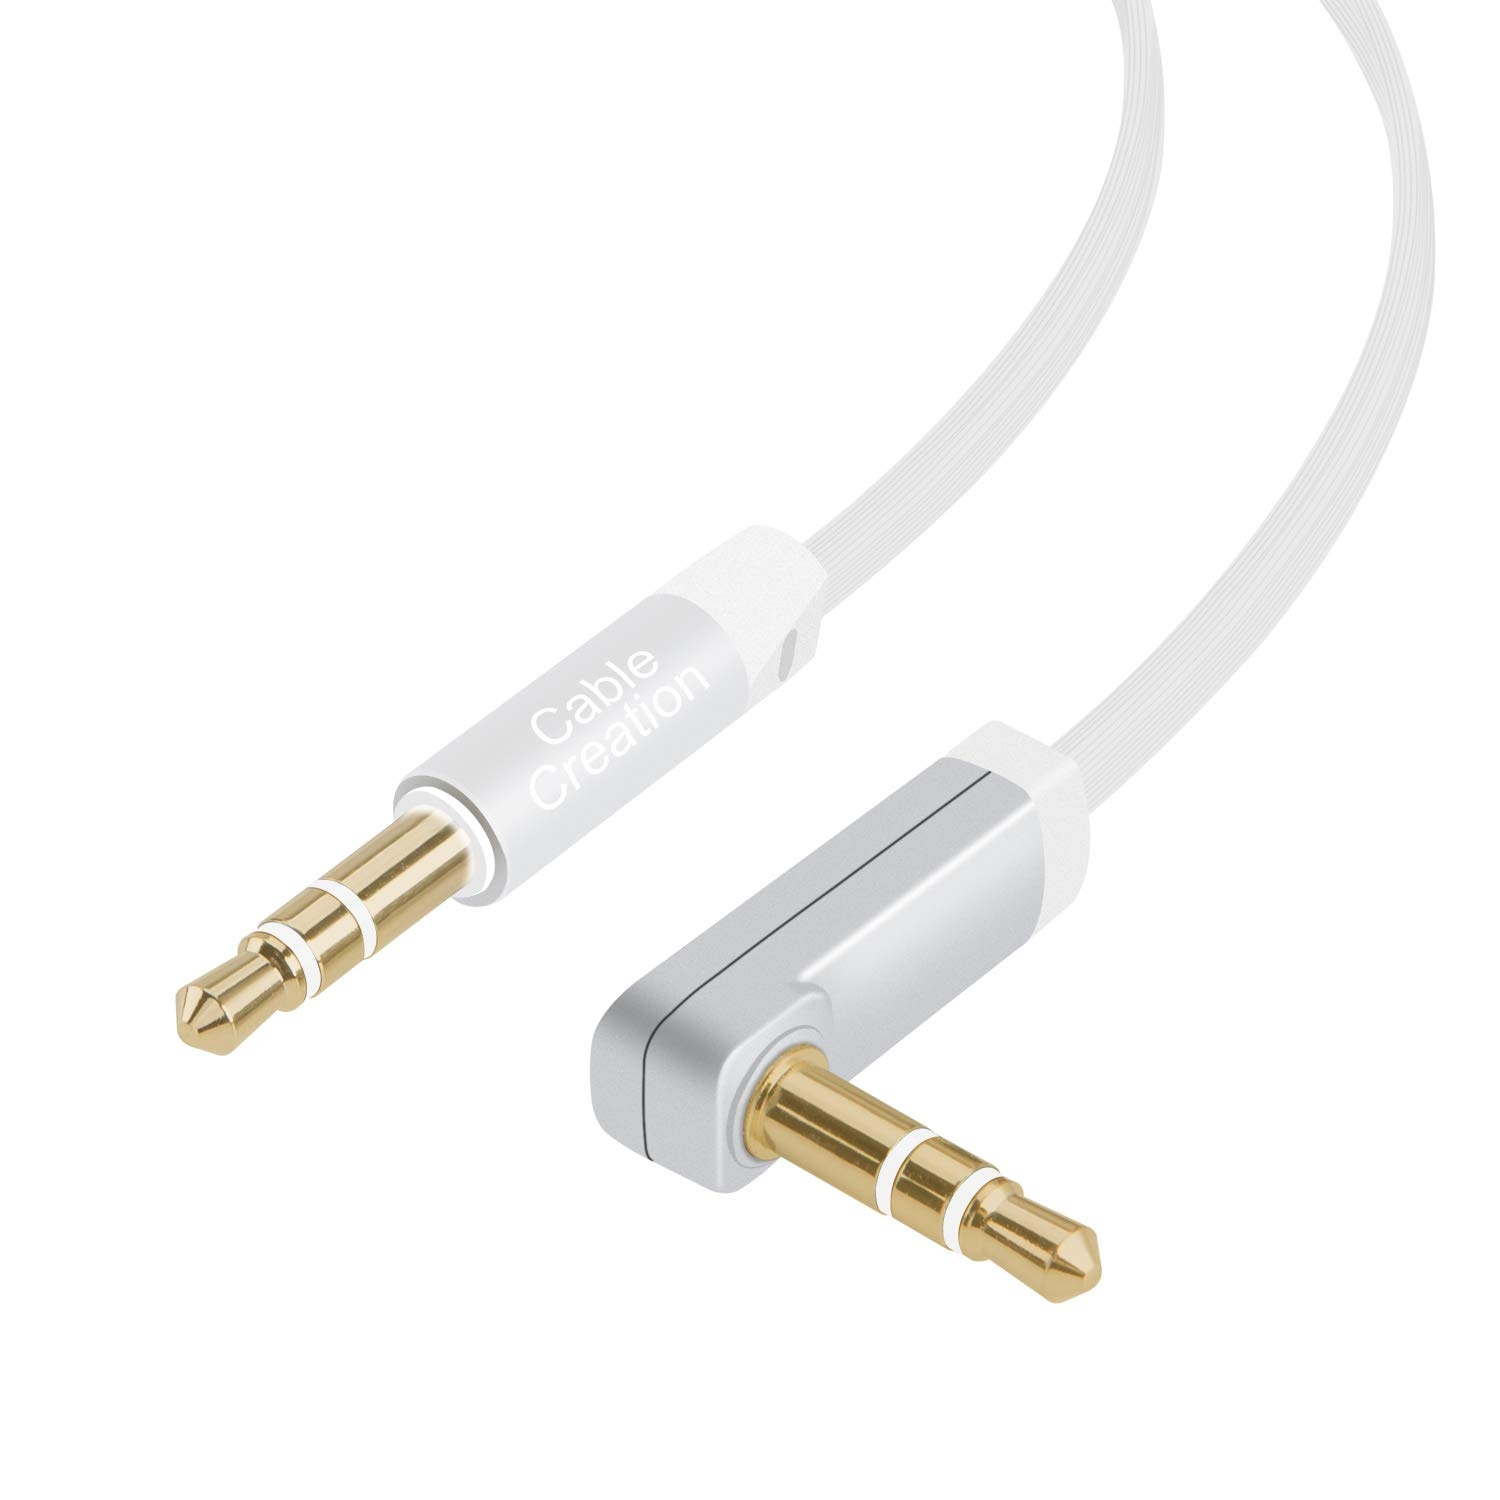 3.5mm Audio Cable 1.5 Feet/0.45 Meters, #CC0400